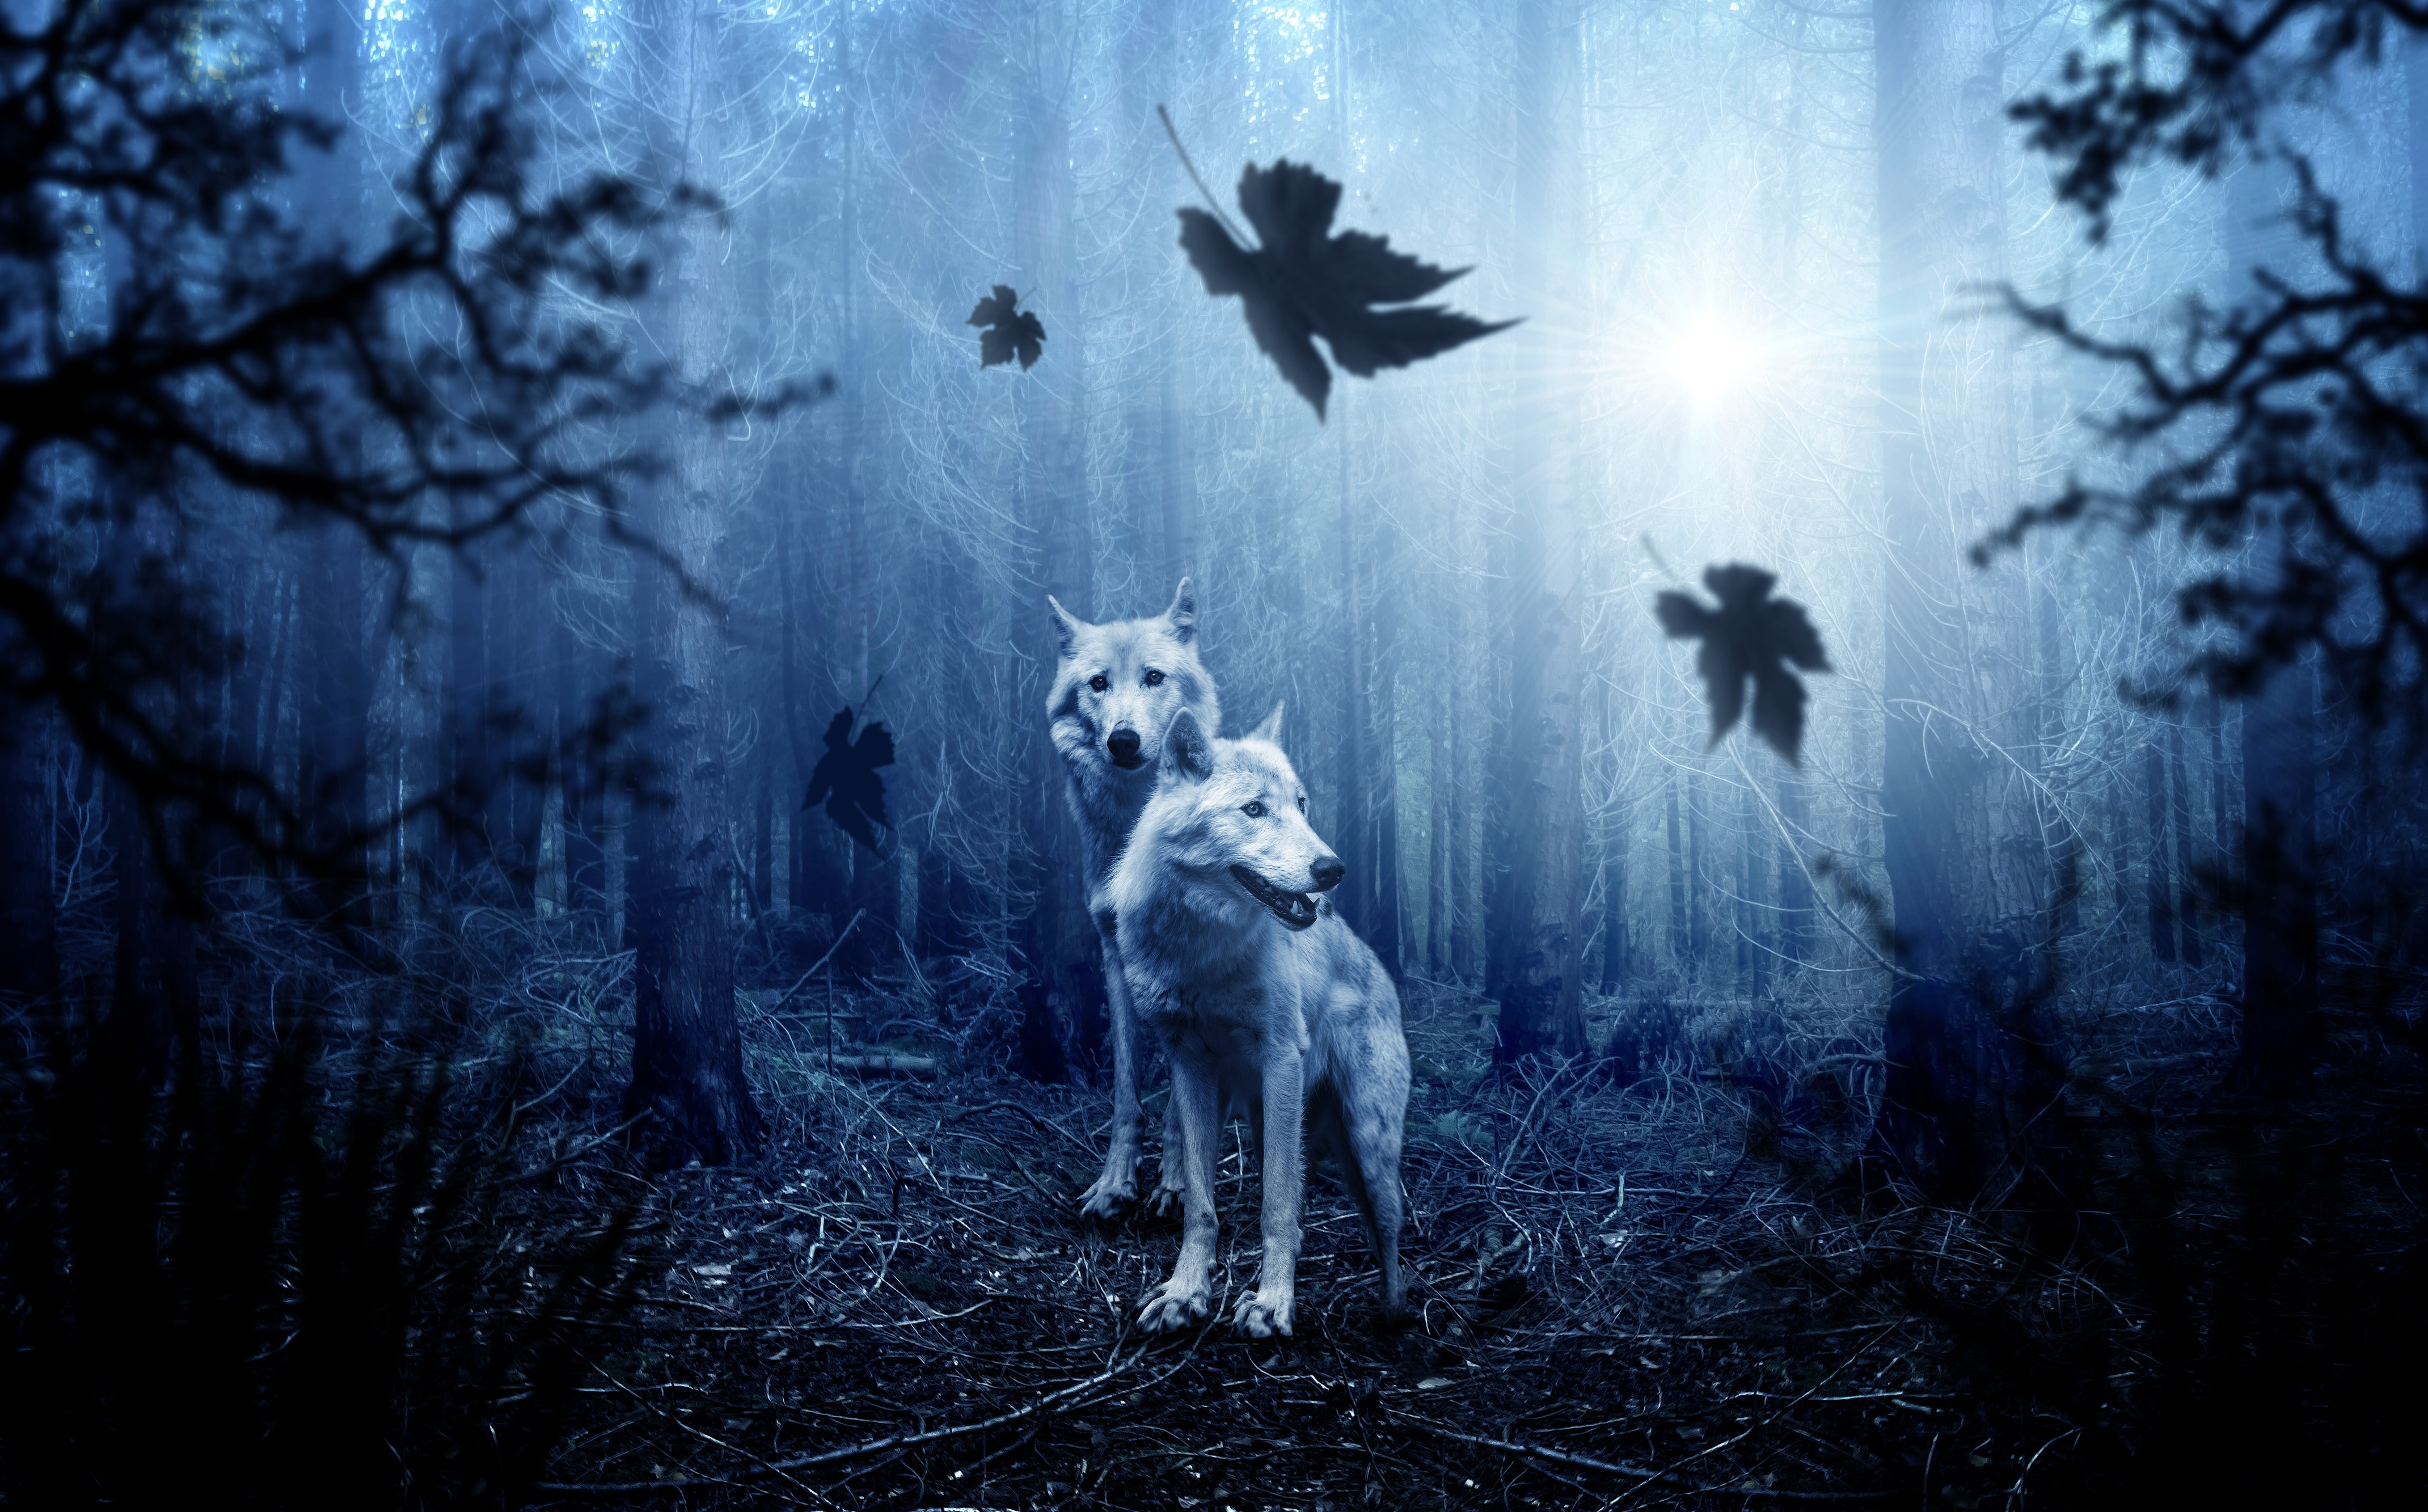 123432 download wallpaper Animals, Wolfs, Predators, Forest, Photoshop screensavers and pictures for free